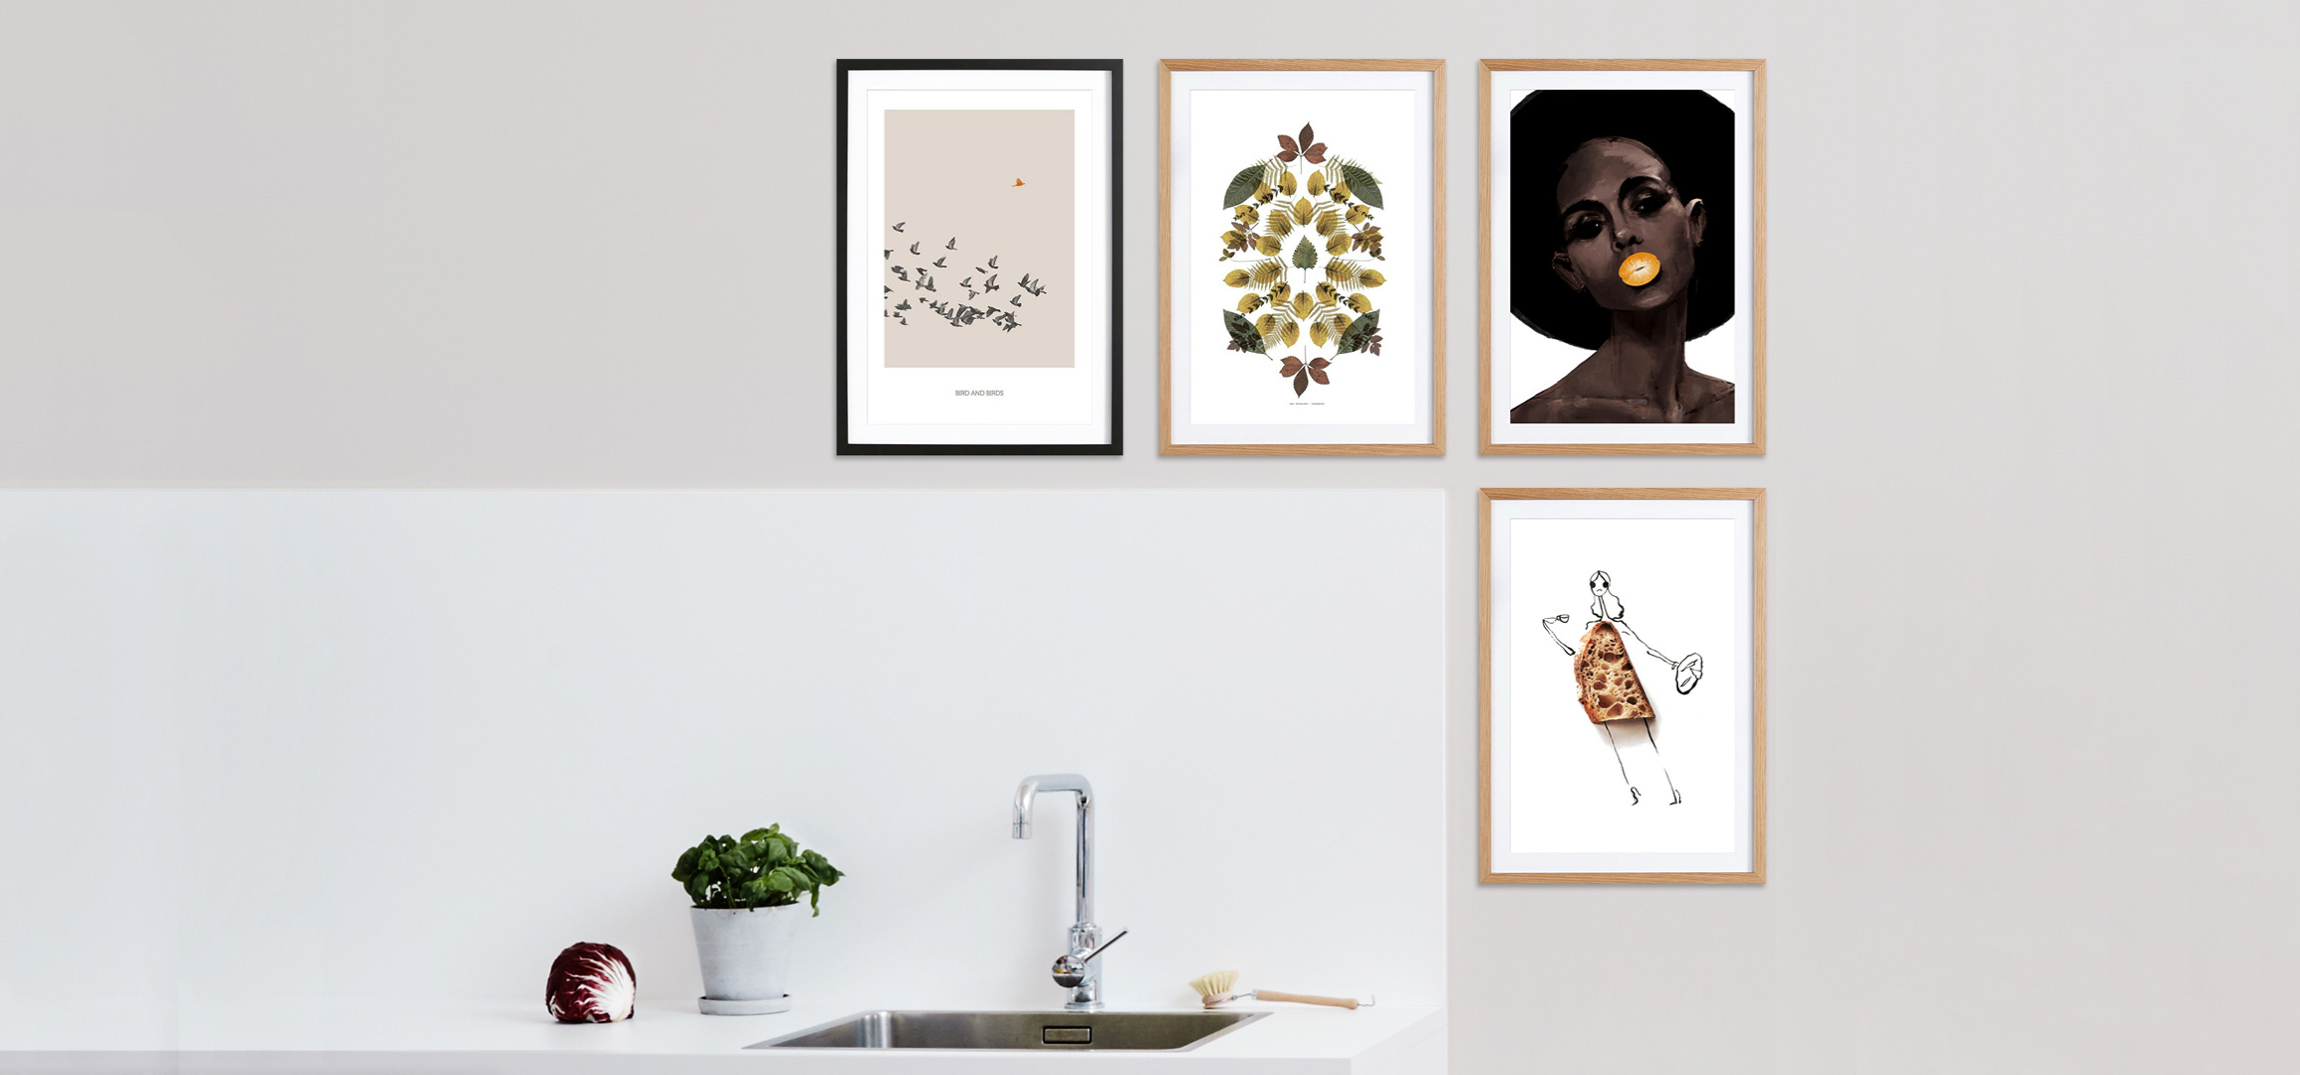 junique framed posters in kitchen with food, nature, birds and woman